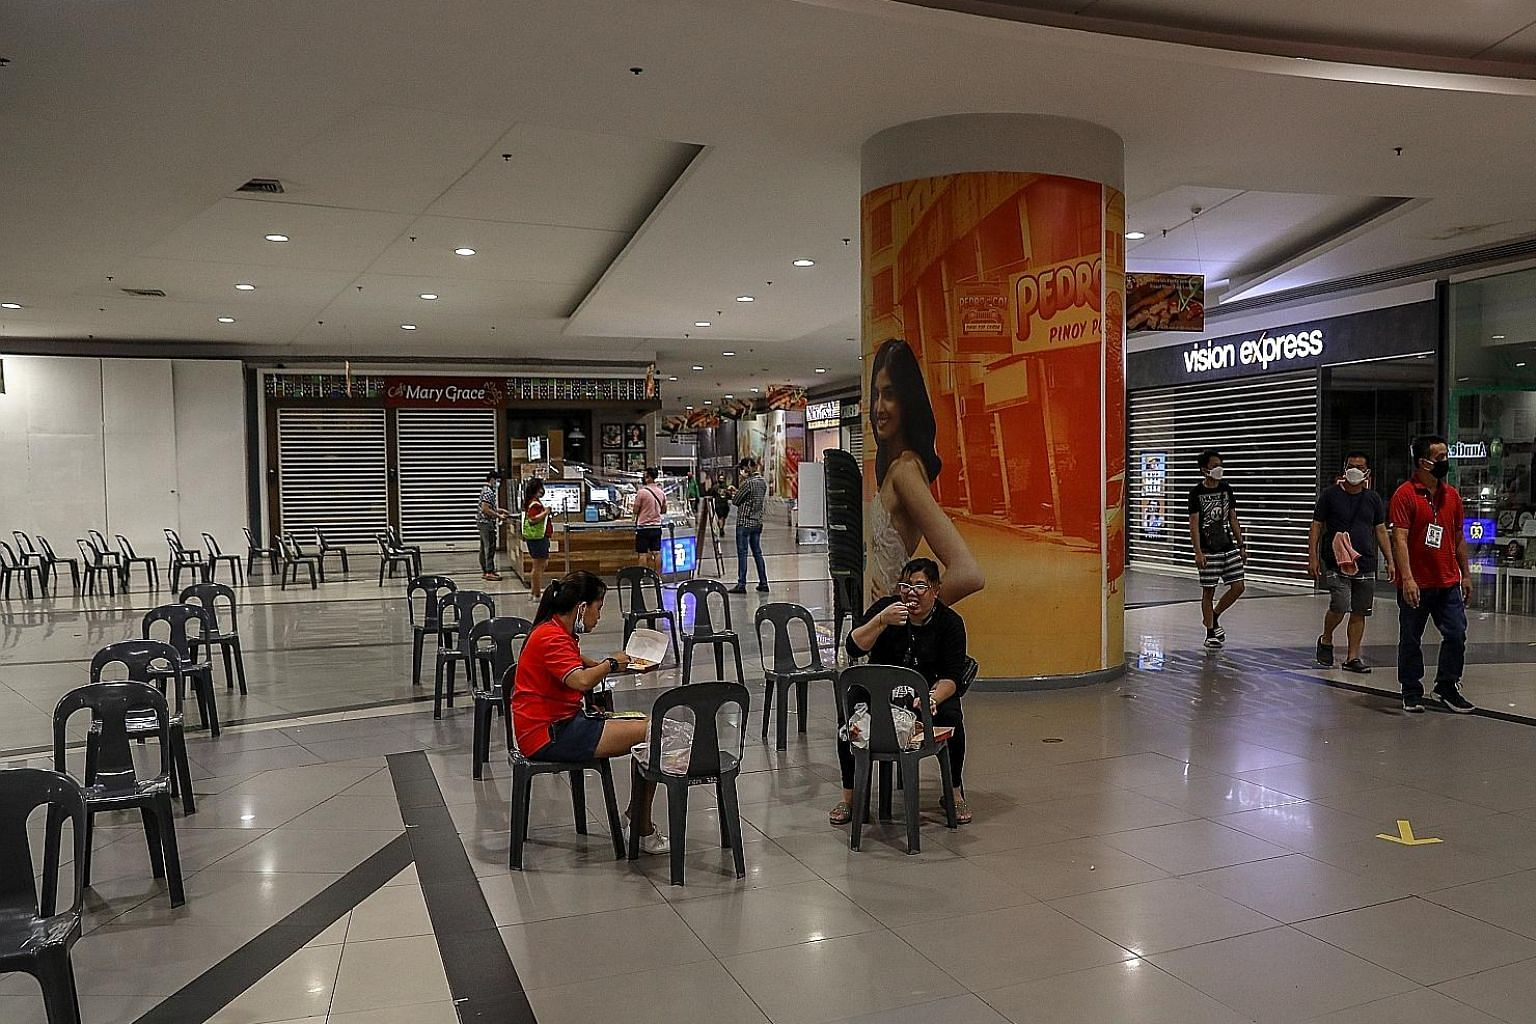 A mall in Manila, which saw very few visitors, earlier this month. The situation is dire for over a million micro, small and medium-sized enterprises in the Philippines. By one estimate, most have just two to three months' worth of cash left. Even af